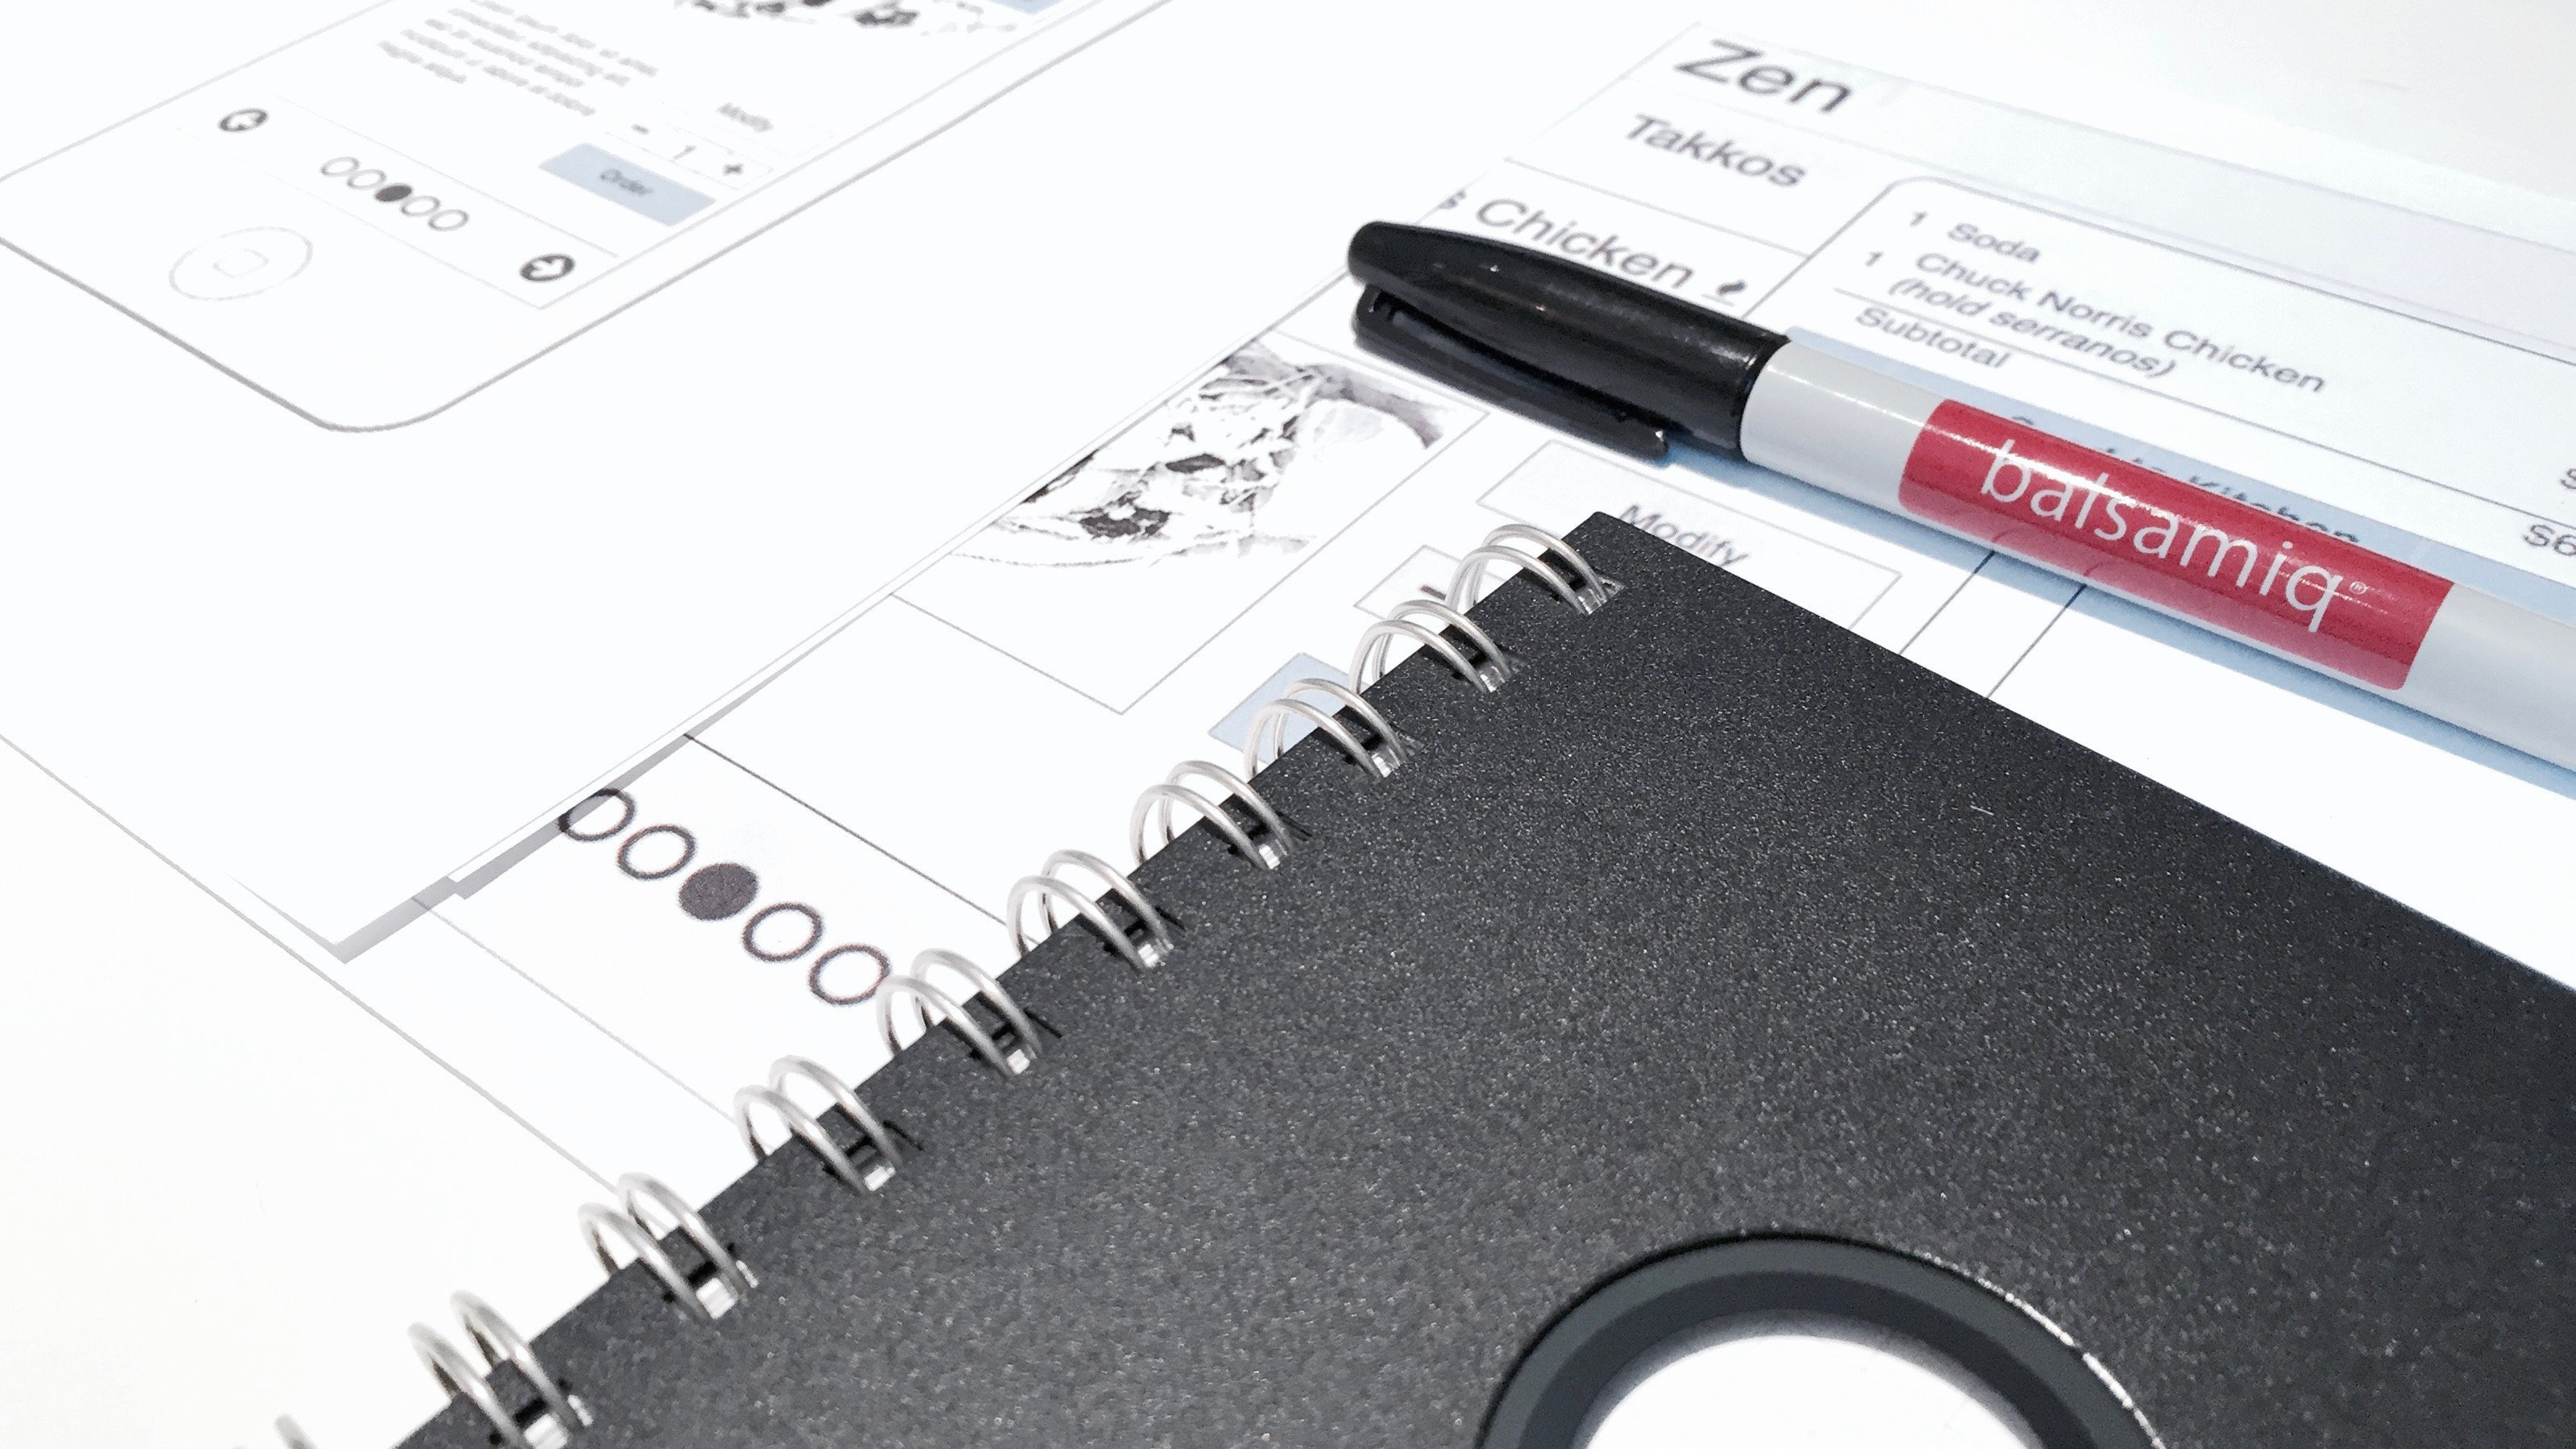 Rapid Wireframing: Finding the Right Product Design